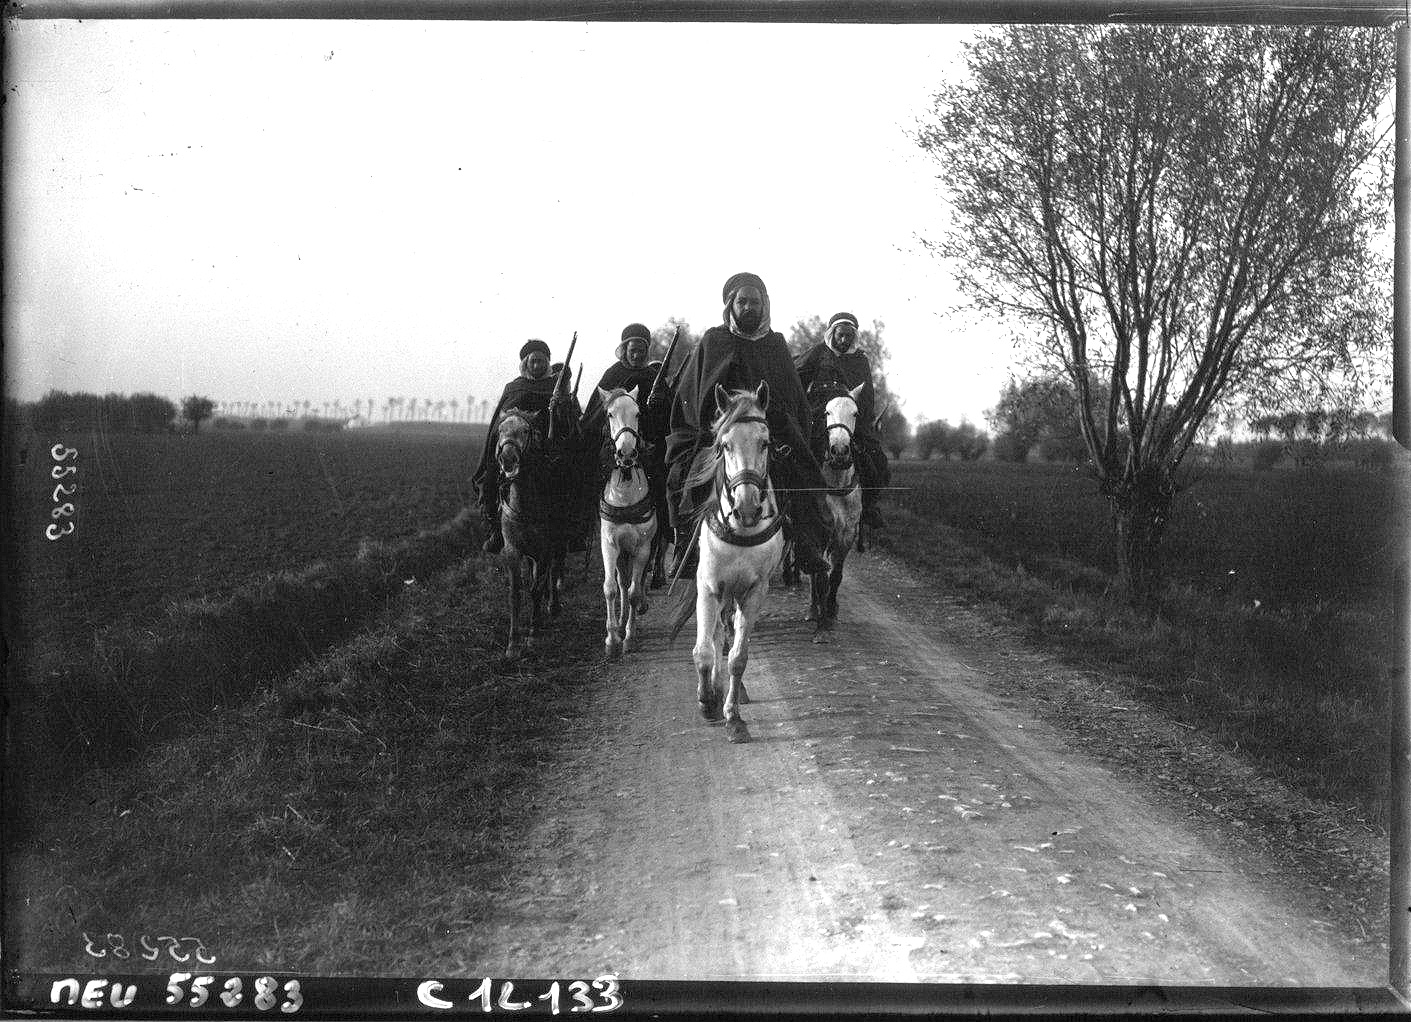 Cavalry patrol of Moroccan Spahis fighting for the French army near Furnes, Belgium, 1914.